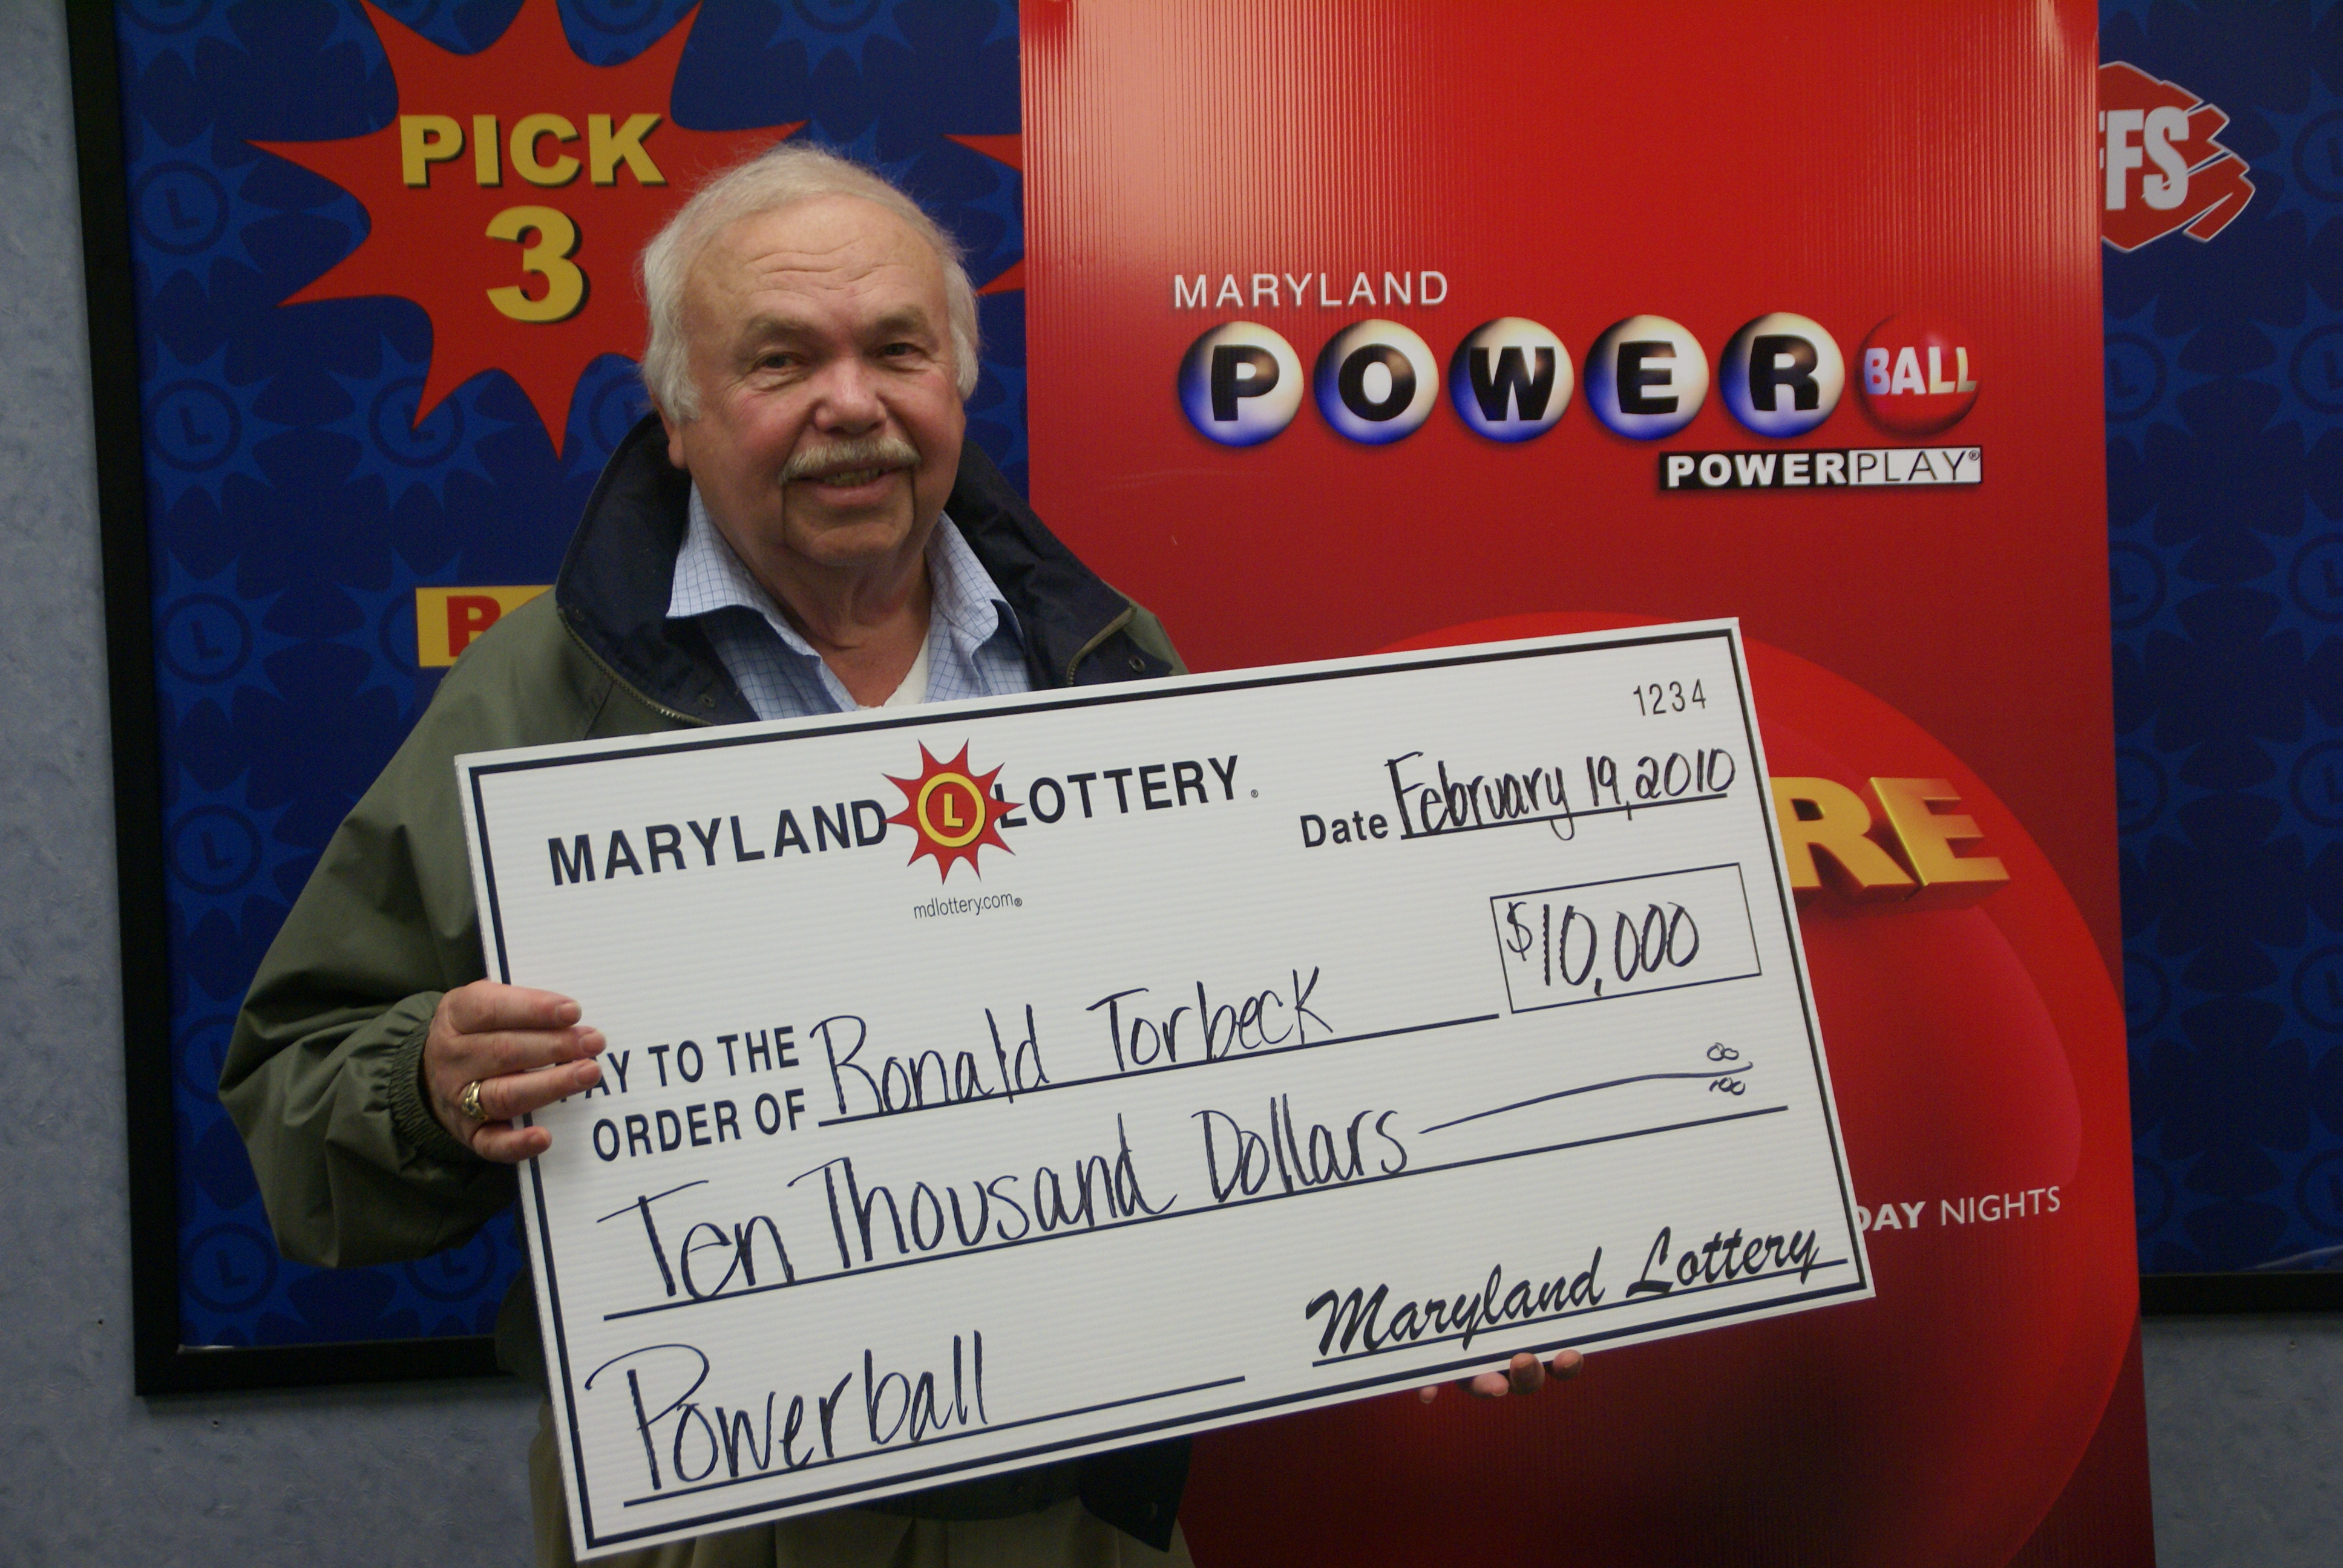 How powerball works and what you need to know to win